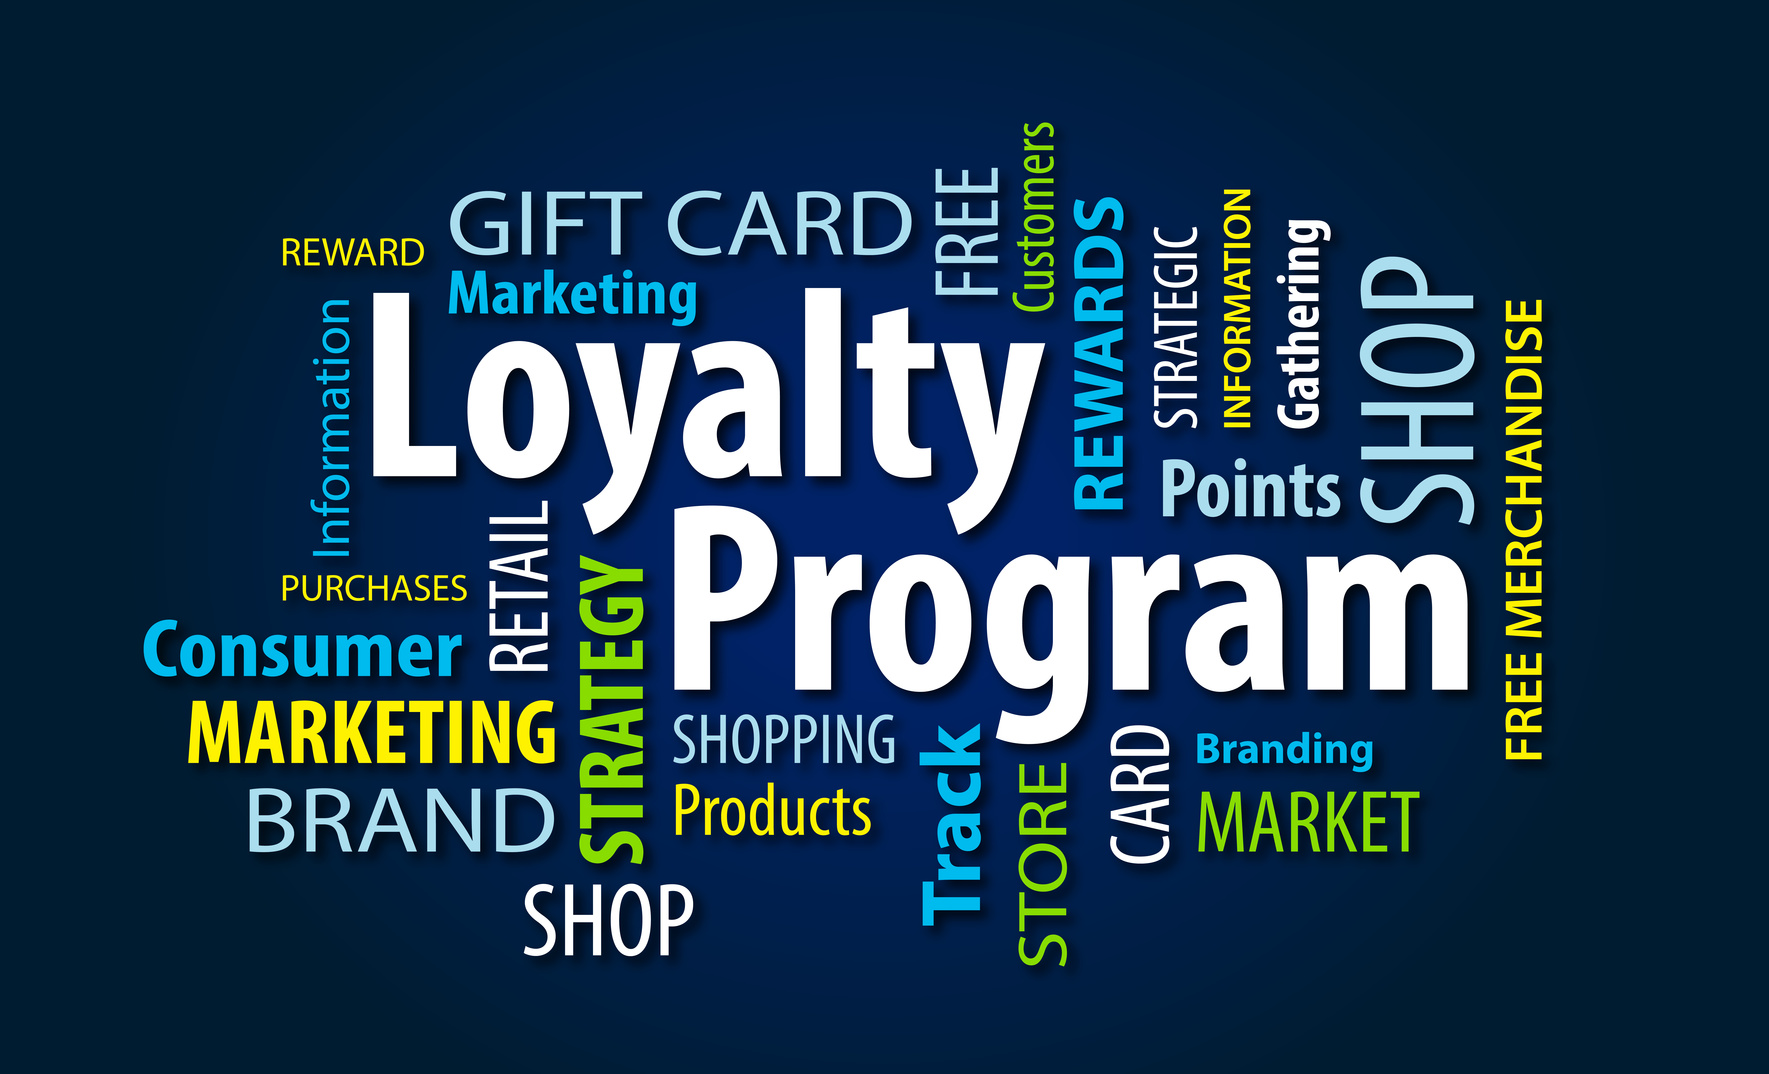 Only 5 Verticals Achieve Customer Adoption above 40% for Their Loyalty Programs: